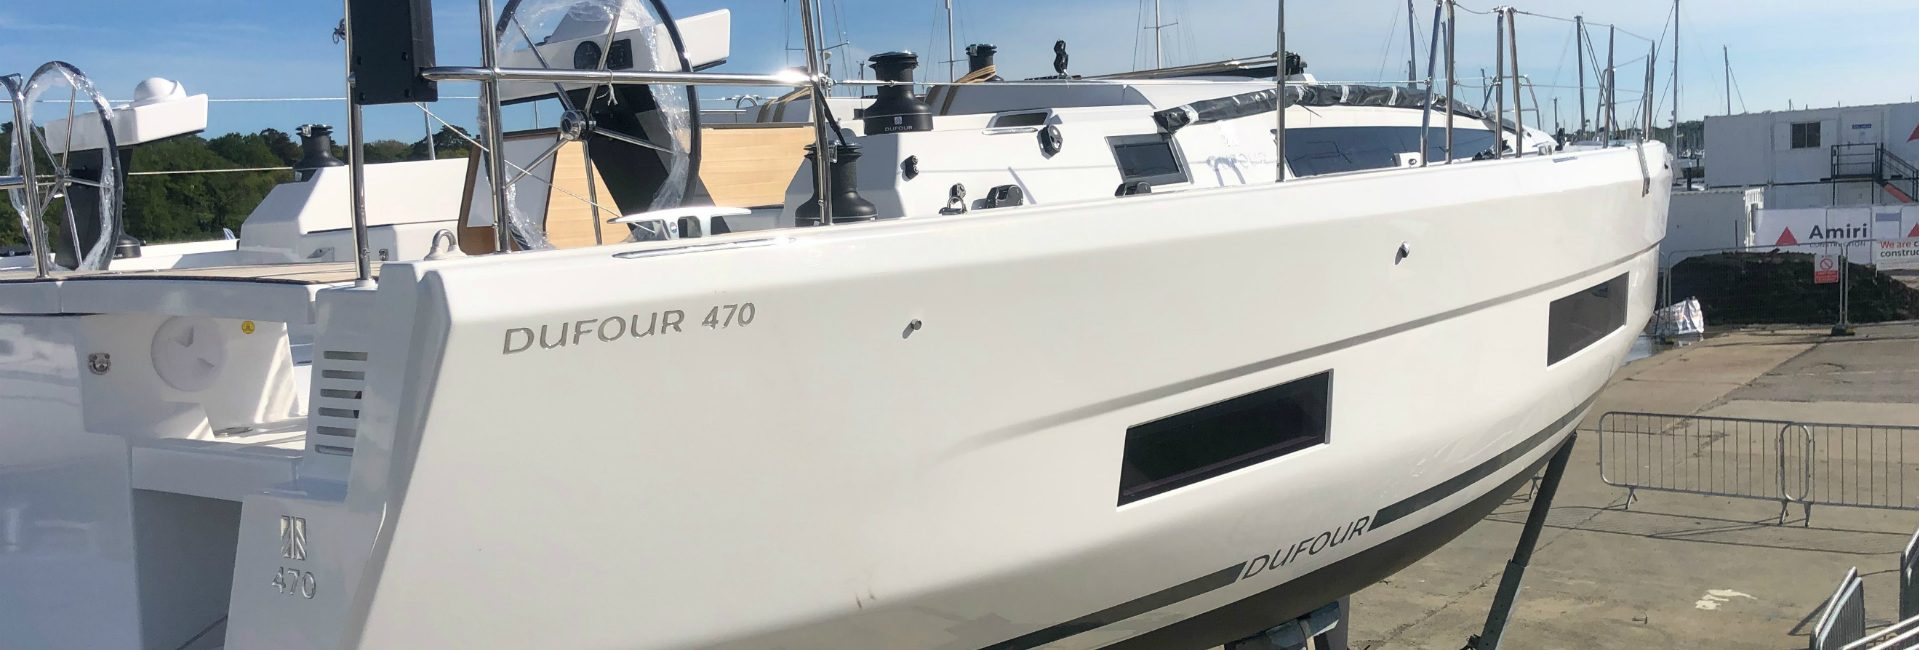 Dufour 470 (#007) For Sale